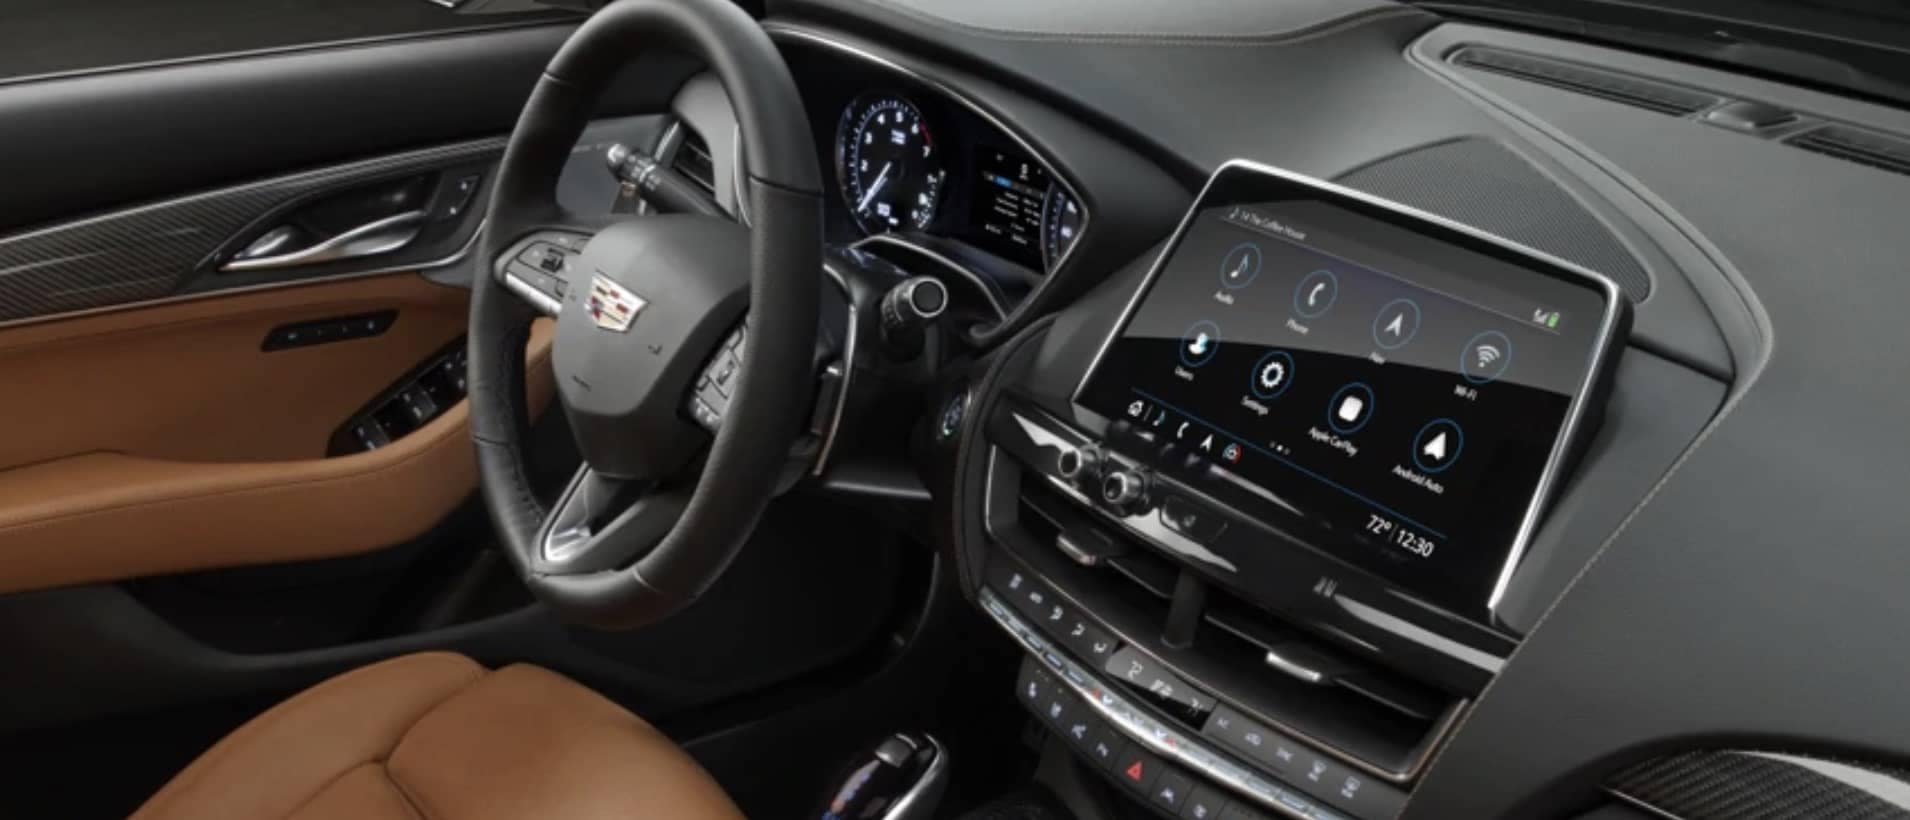 View of the cadillac dashboard